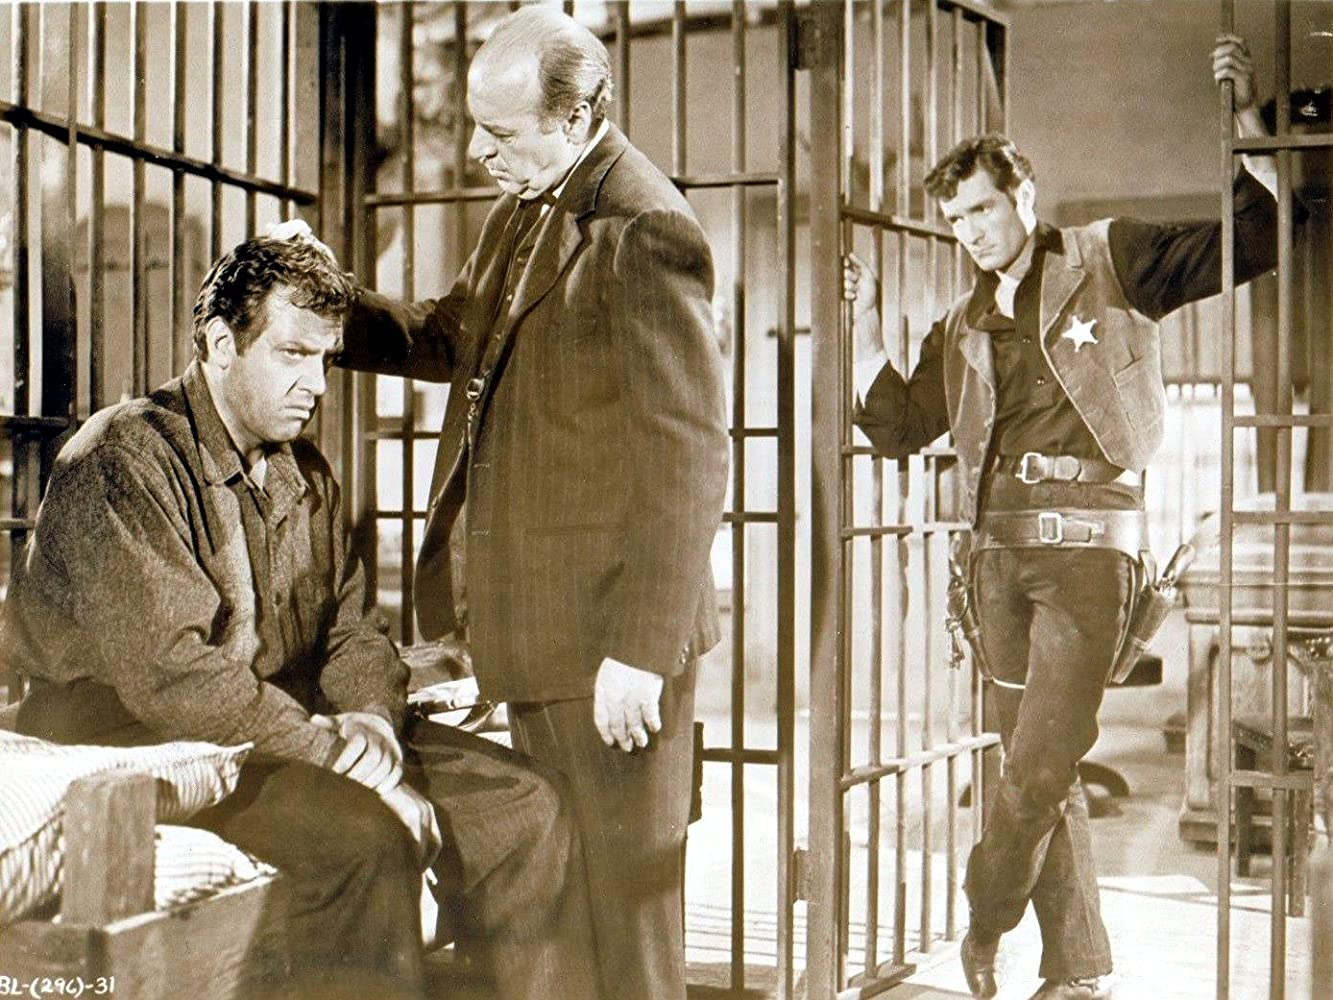 Raymond Burr, Robert Griffin, and Hugh O'Brian in The Brass Legend (1956)